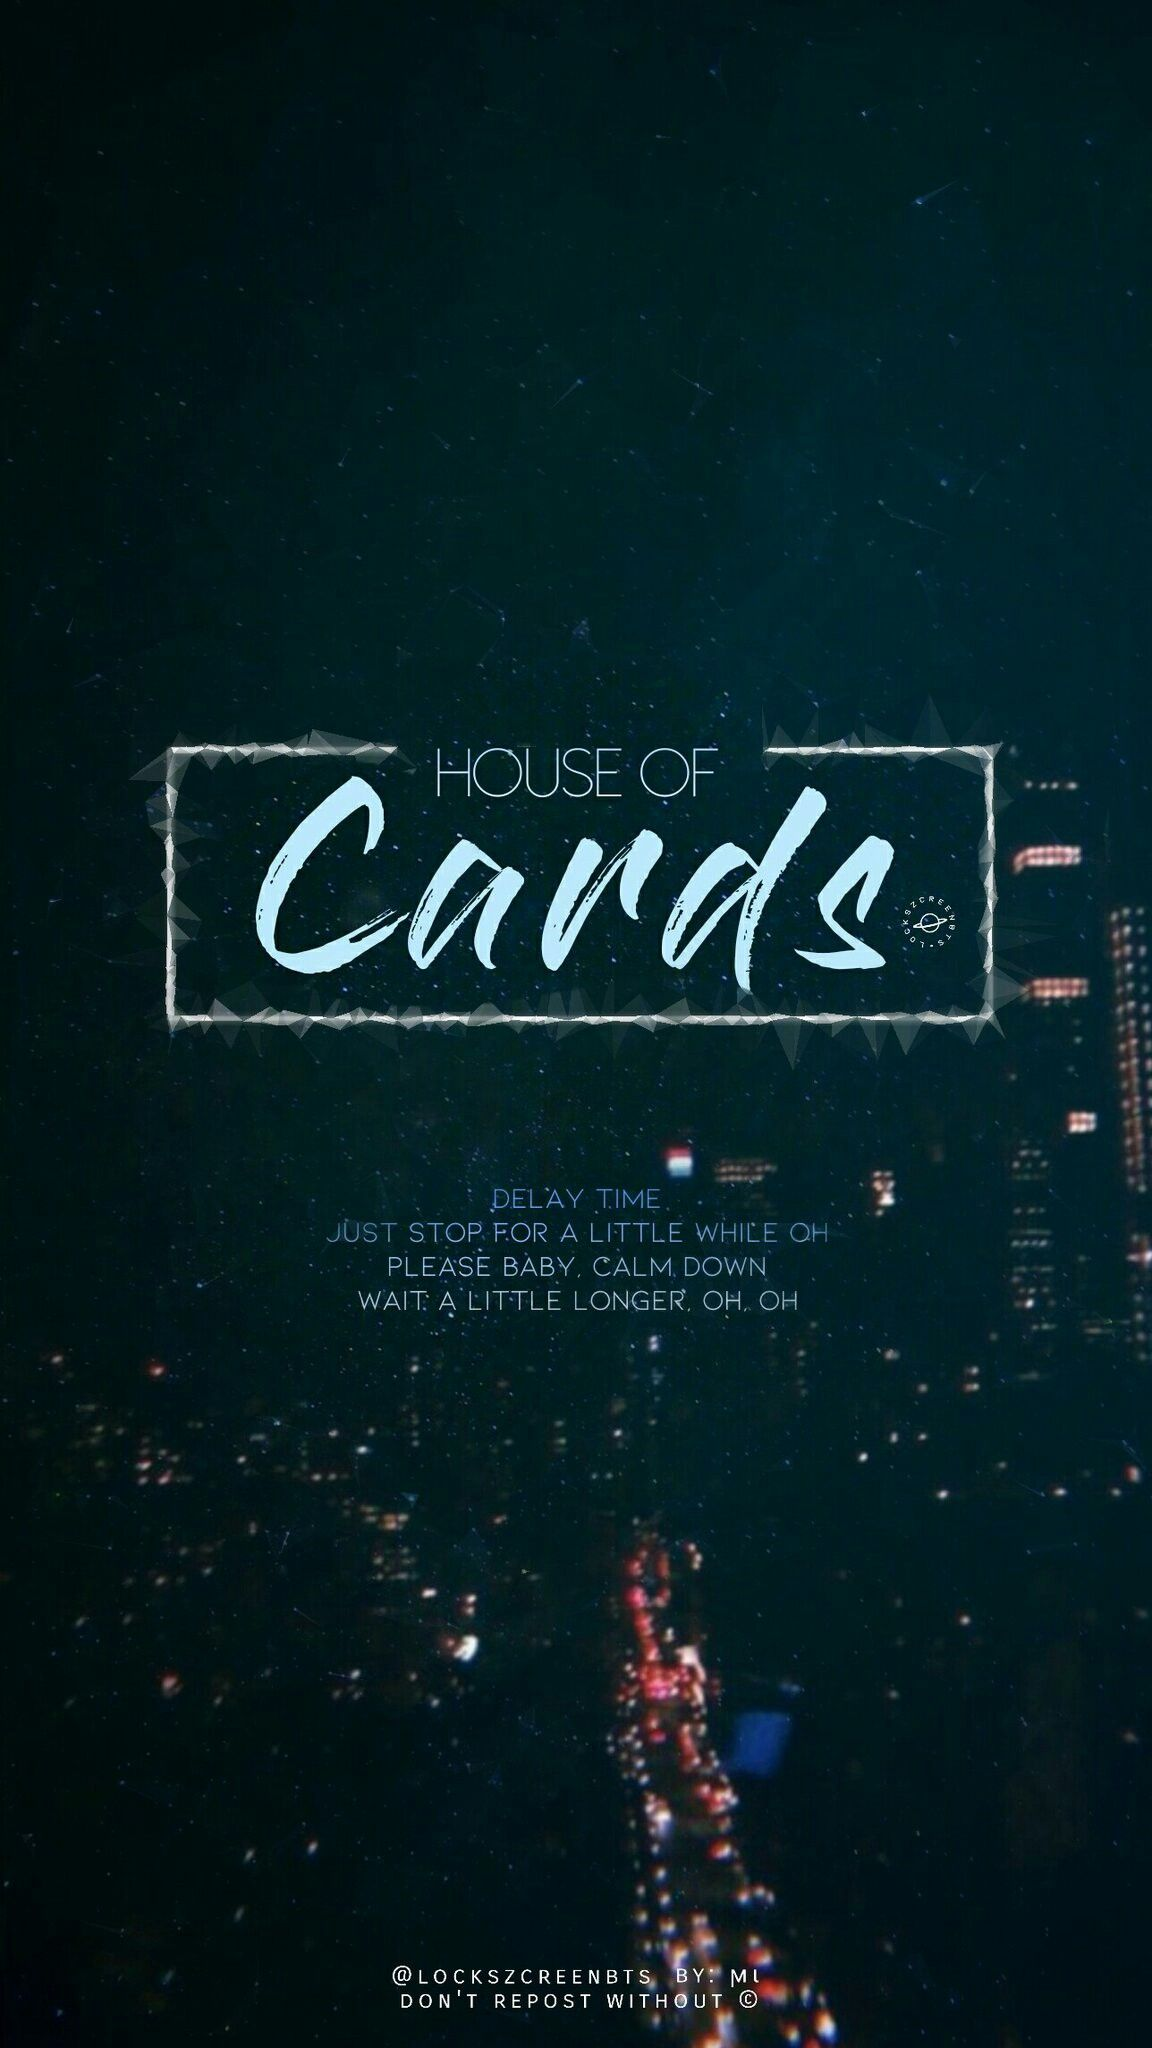 Bts House Of Cards Wallpaper Lockscreen Bts Lockscreen Header